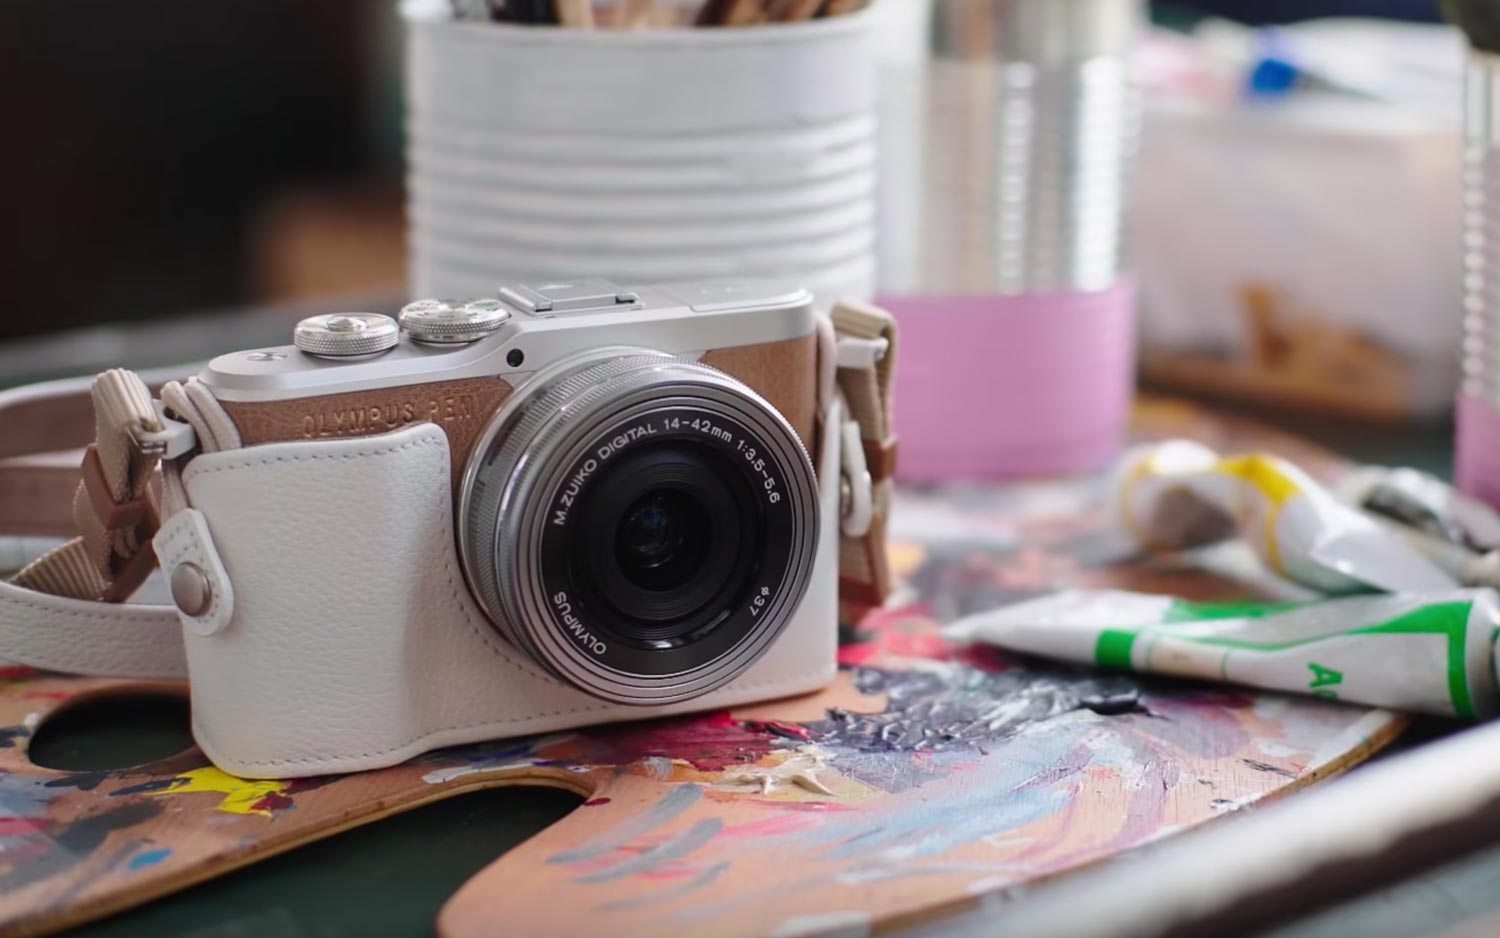 Olympus PEN E-PL9 Mirrorless Camera - Full Review and